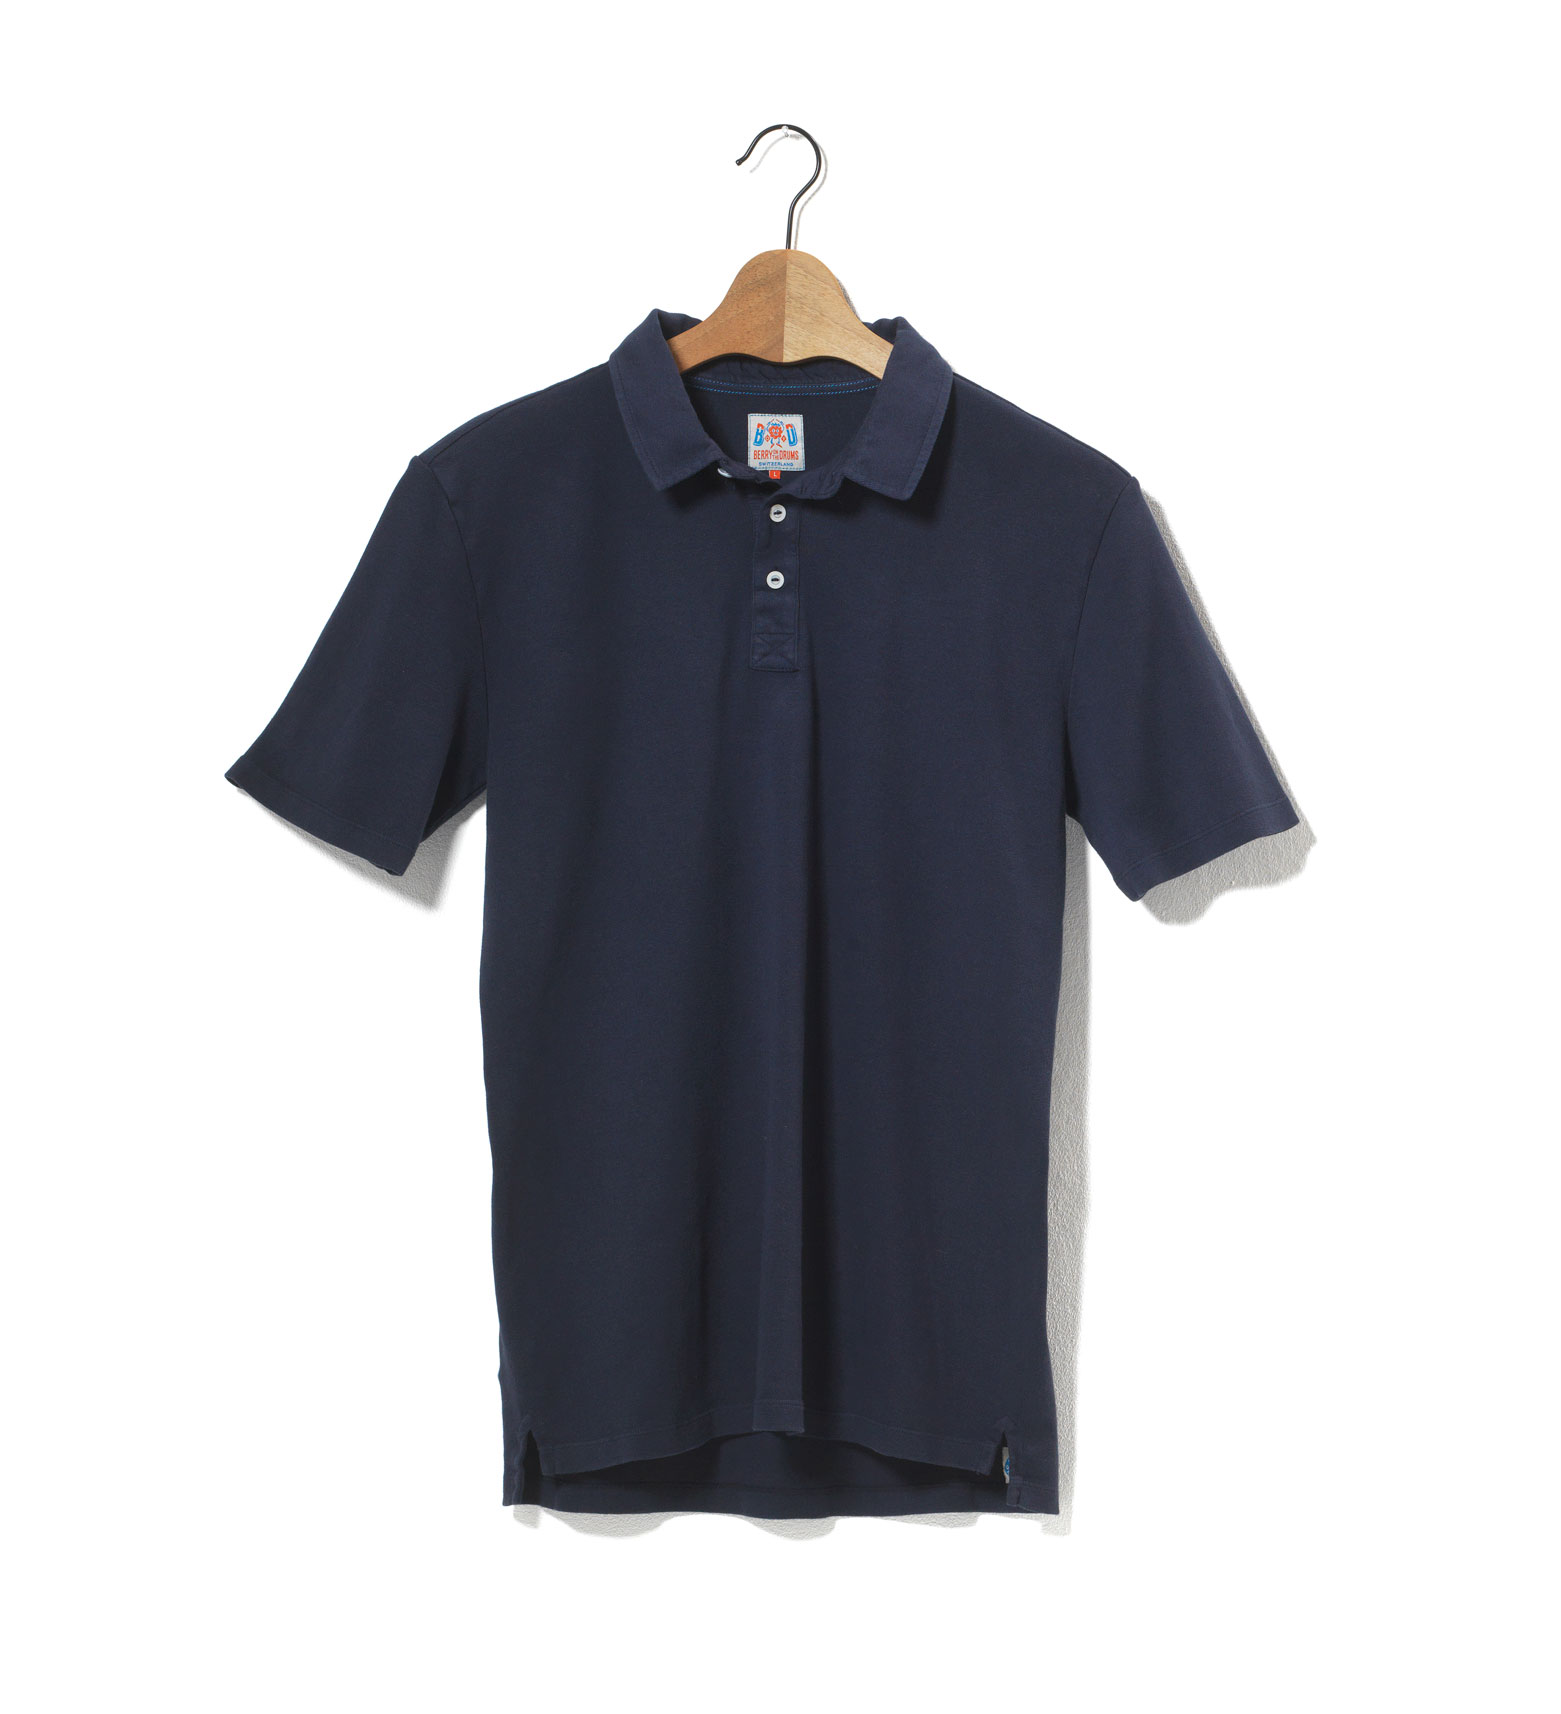 Image of Polo Shirt Ribbed Jersey